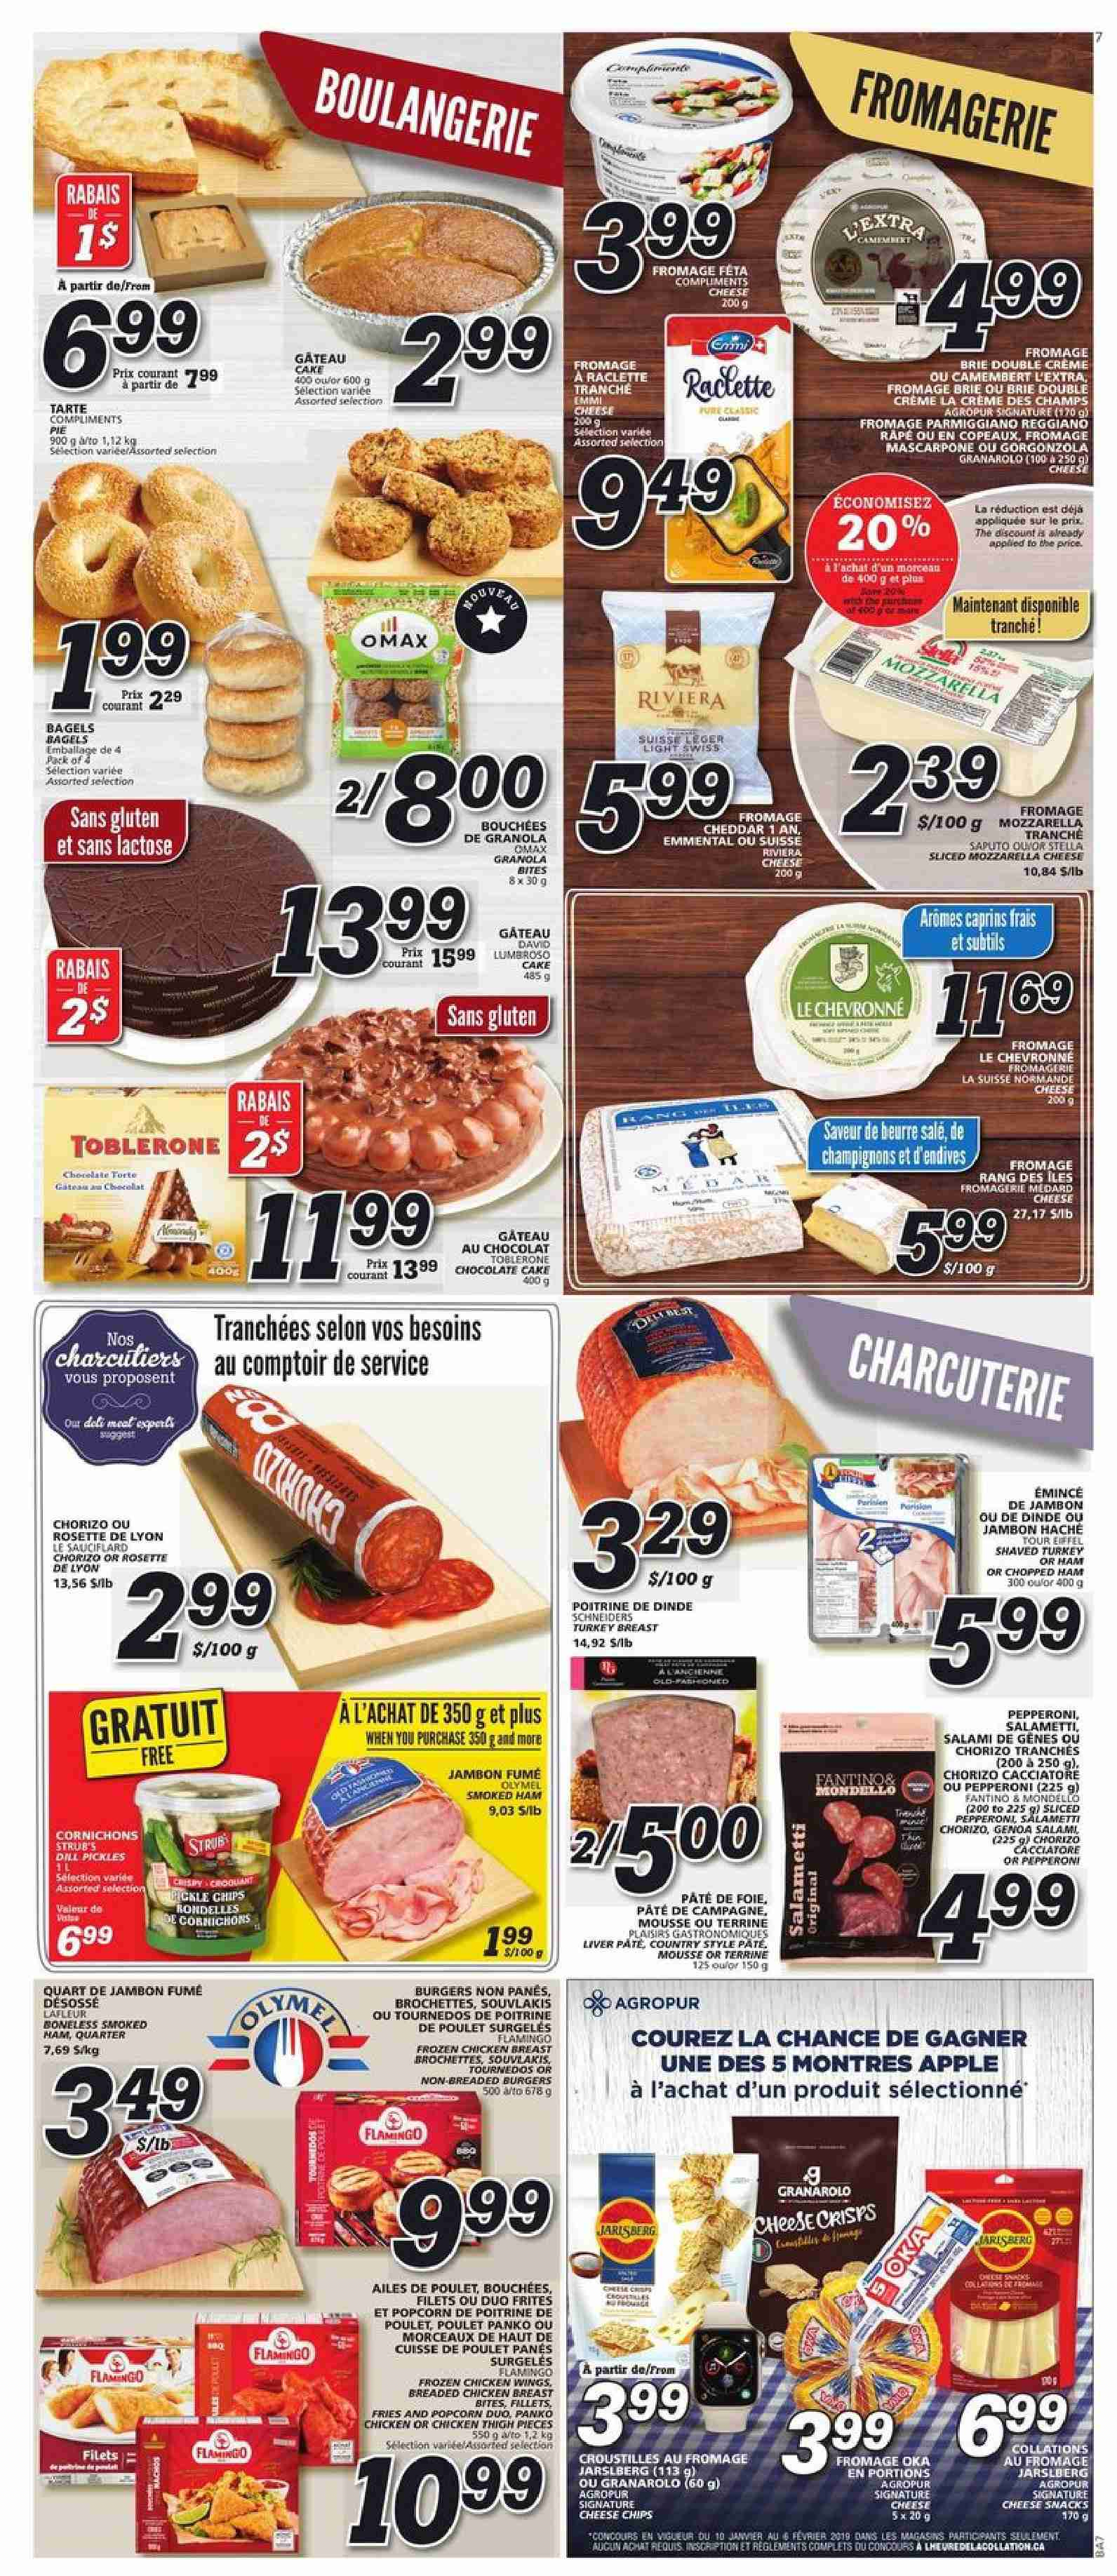 IGA Flyer  - January 17, 2019 - January 23, 2019. Page 5.